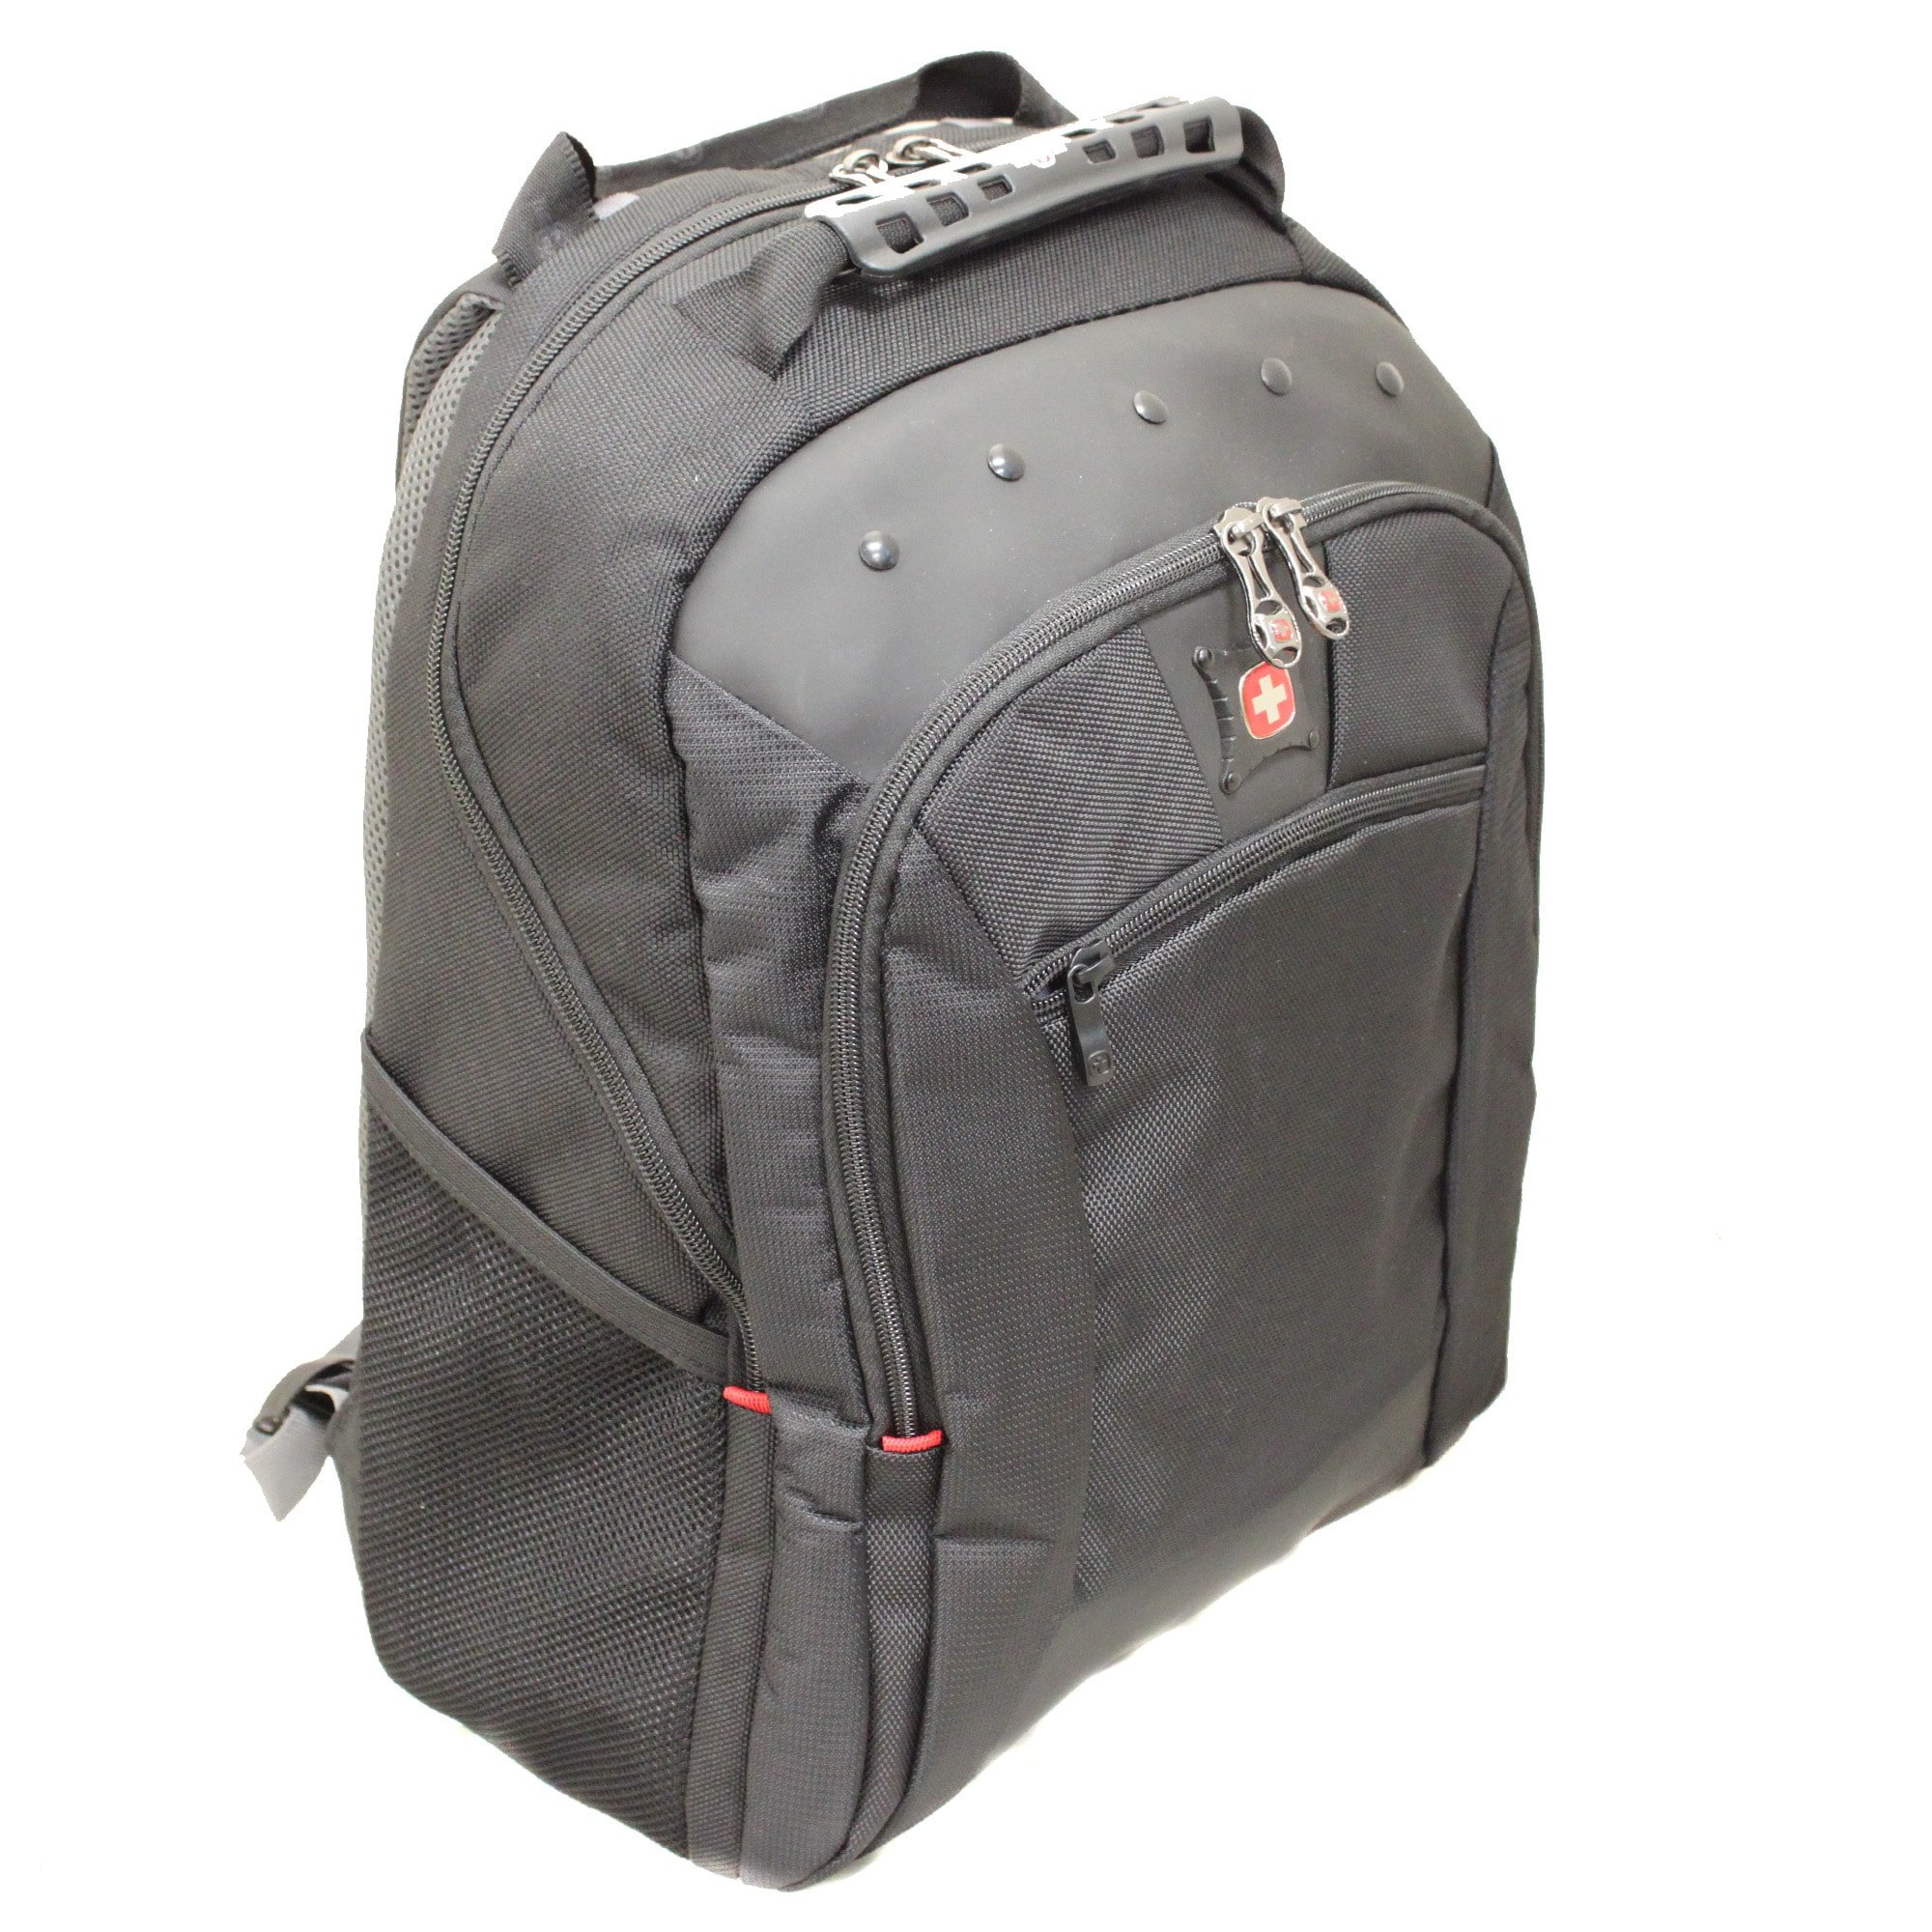 Swiss Gear Backpack Warranty Claim | Crazy Backpacks